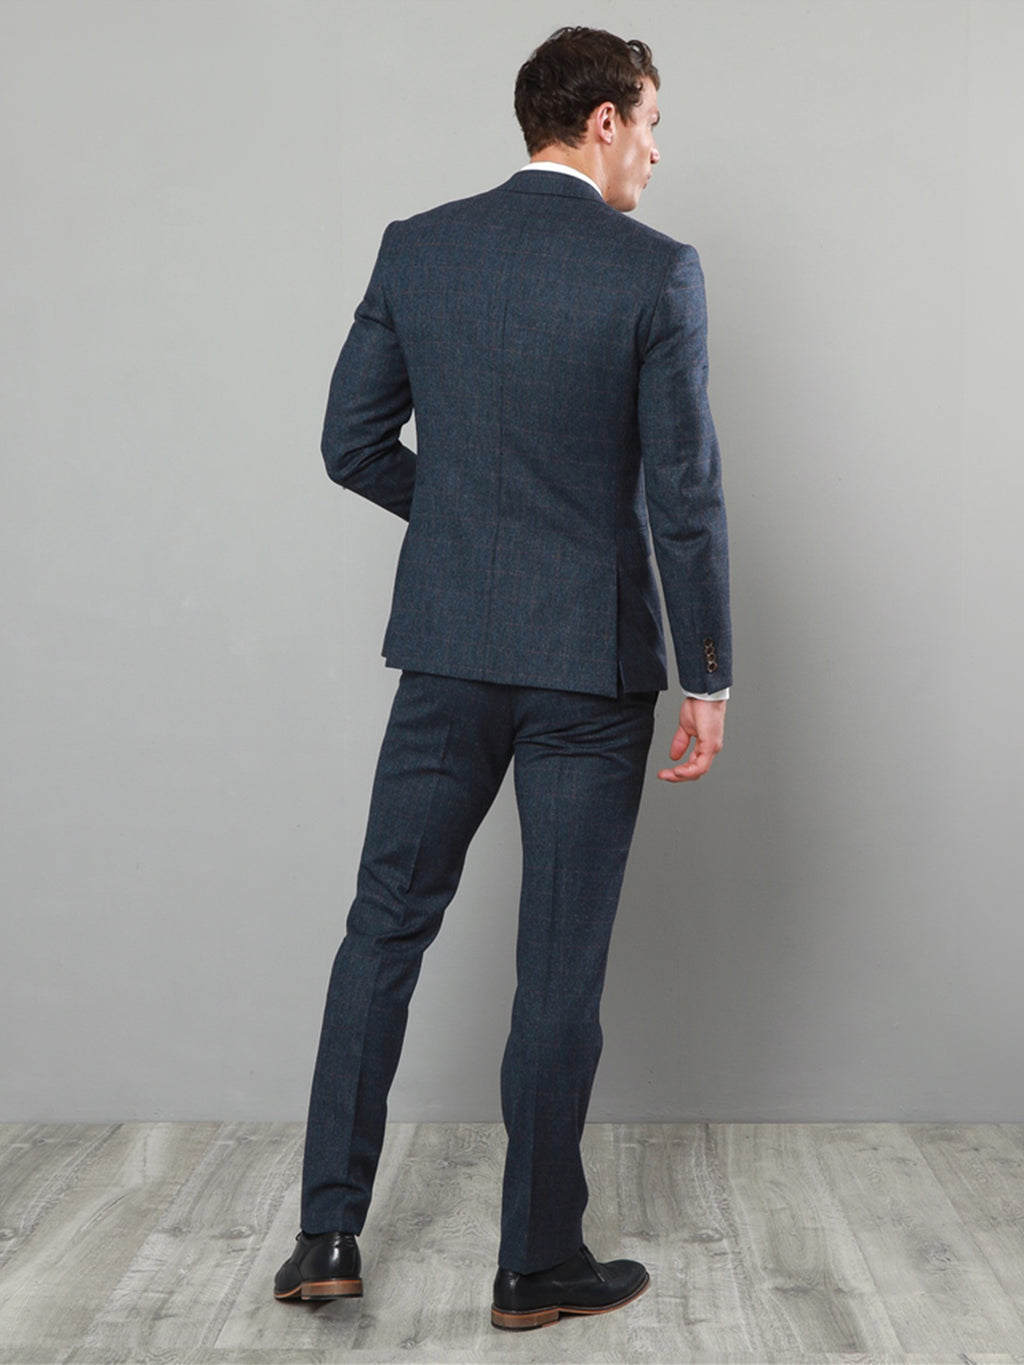 5a5a5f117e6a93 Tapered Fit Navy Check Tweed Suit – FOCUS Menswear